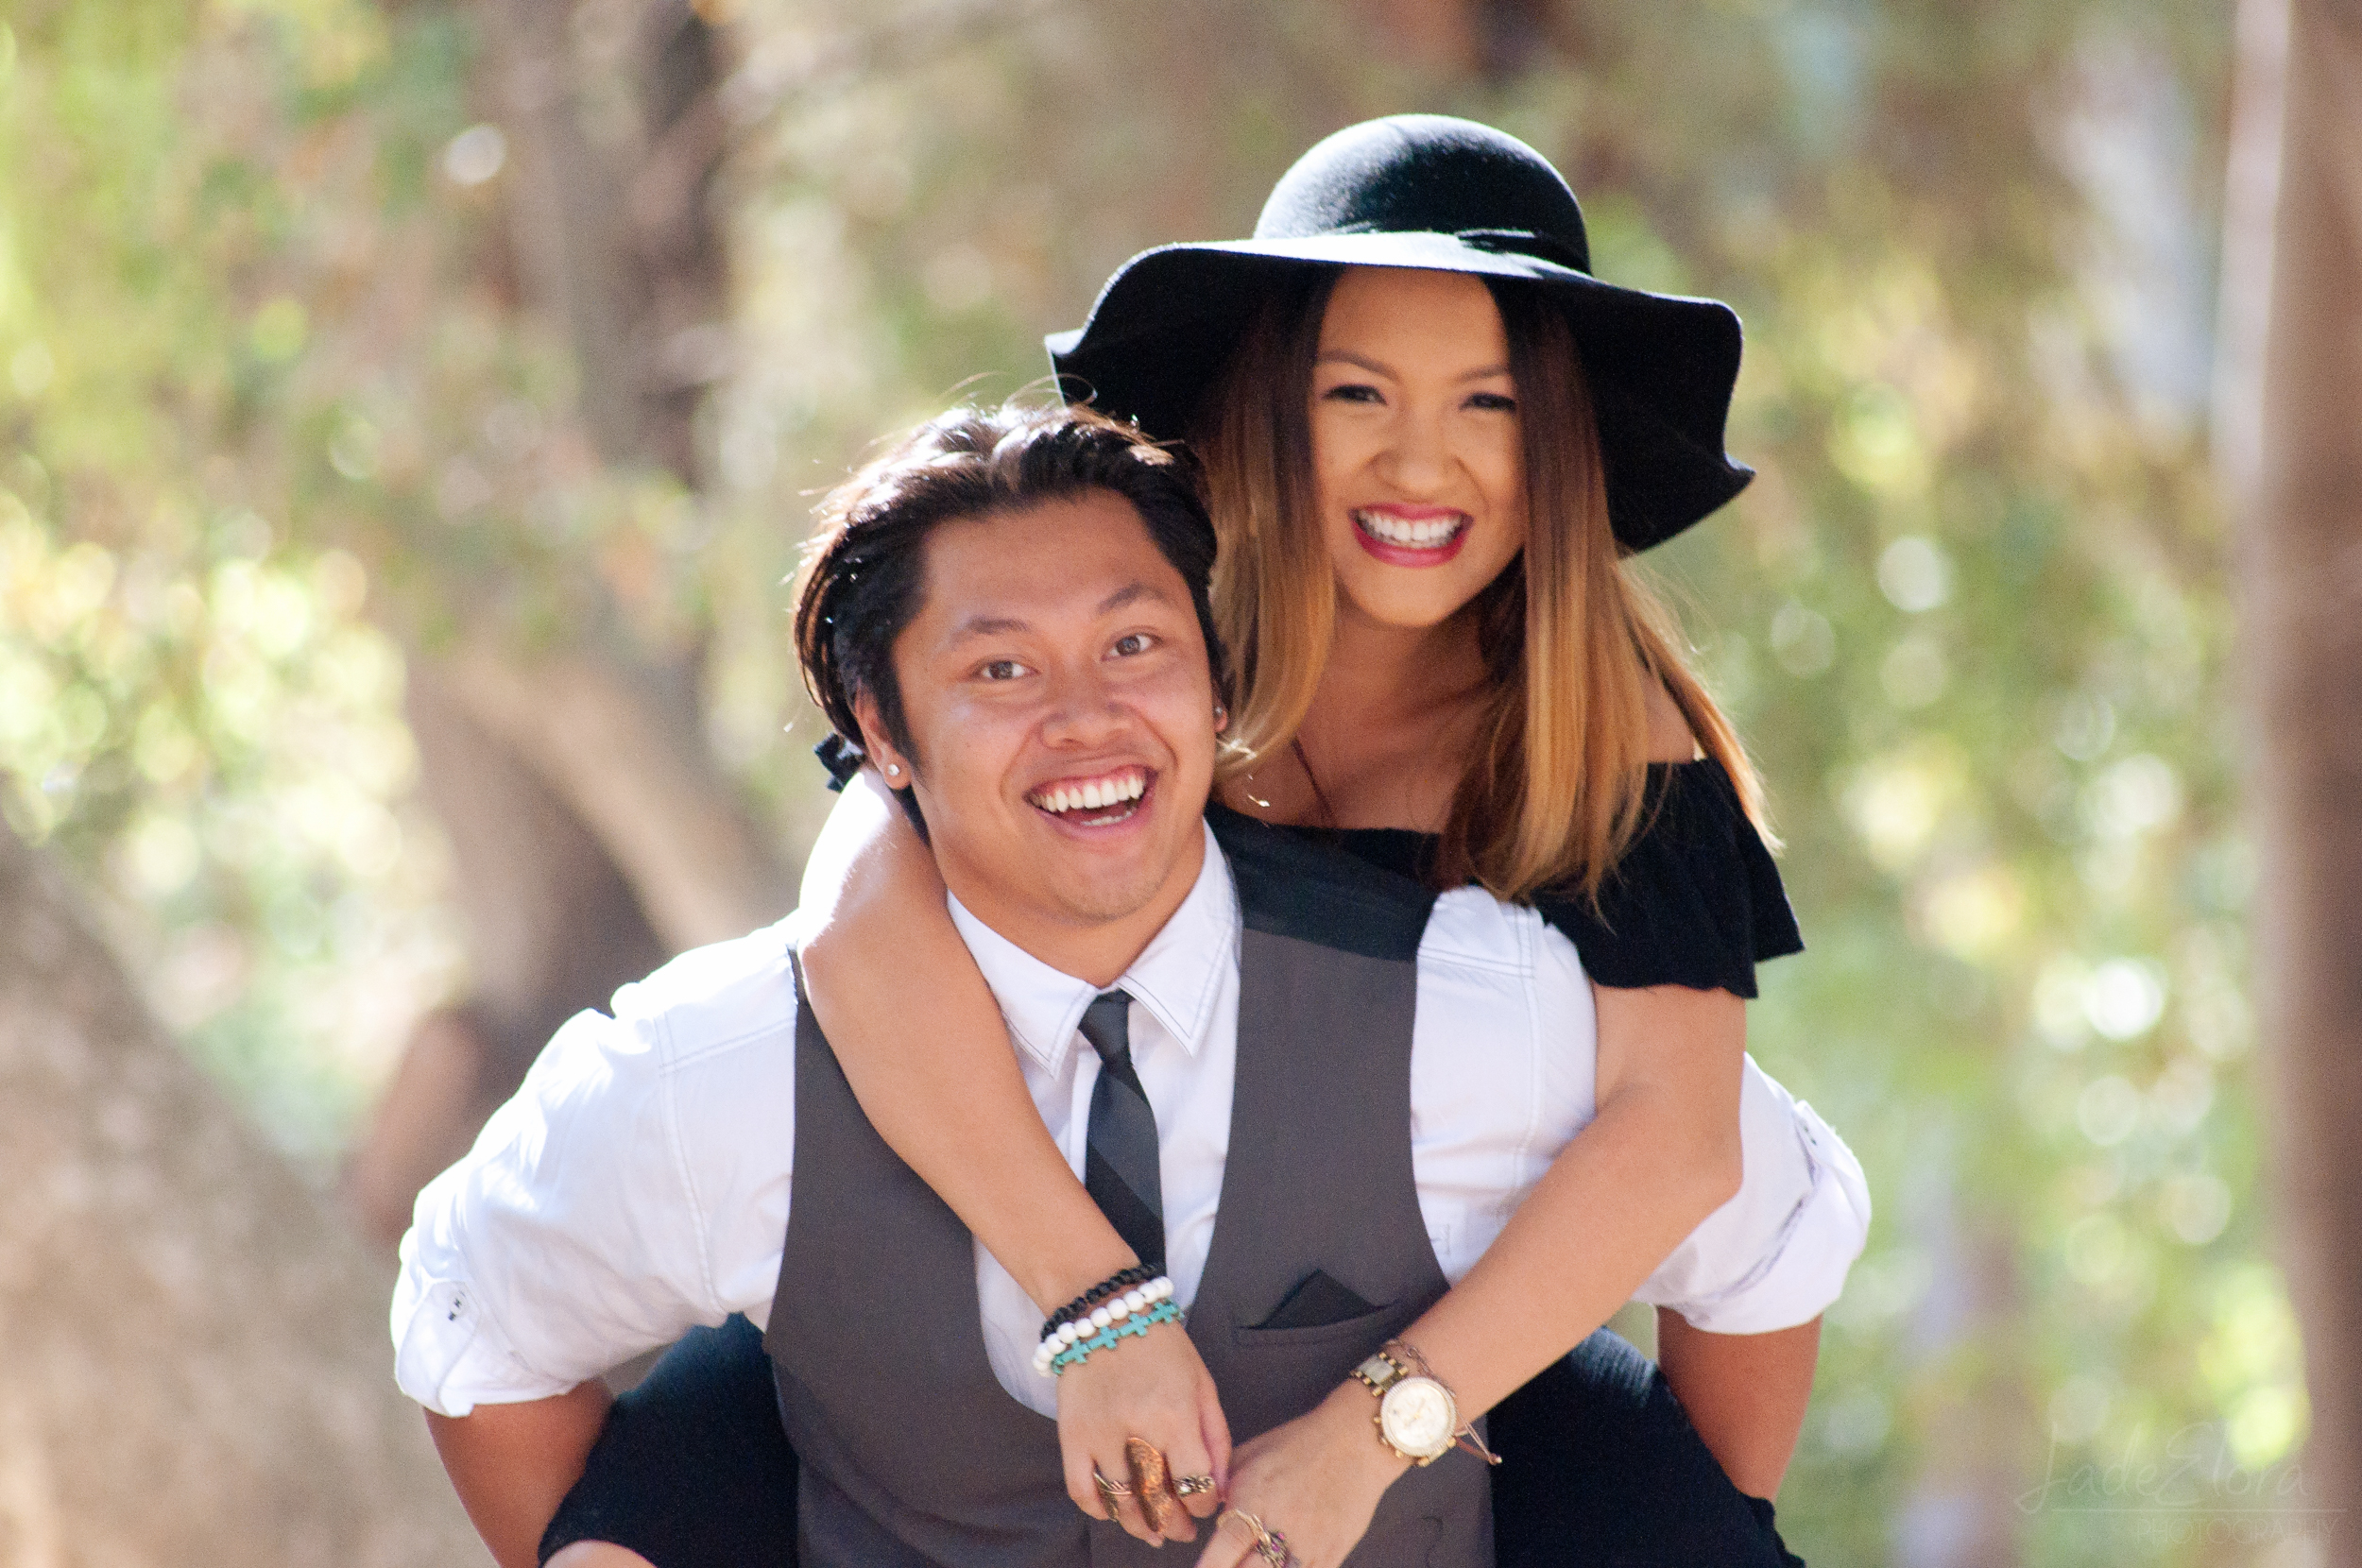 Dapper Fun Couple Photograph